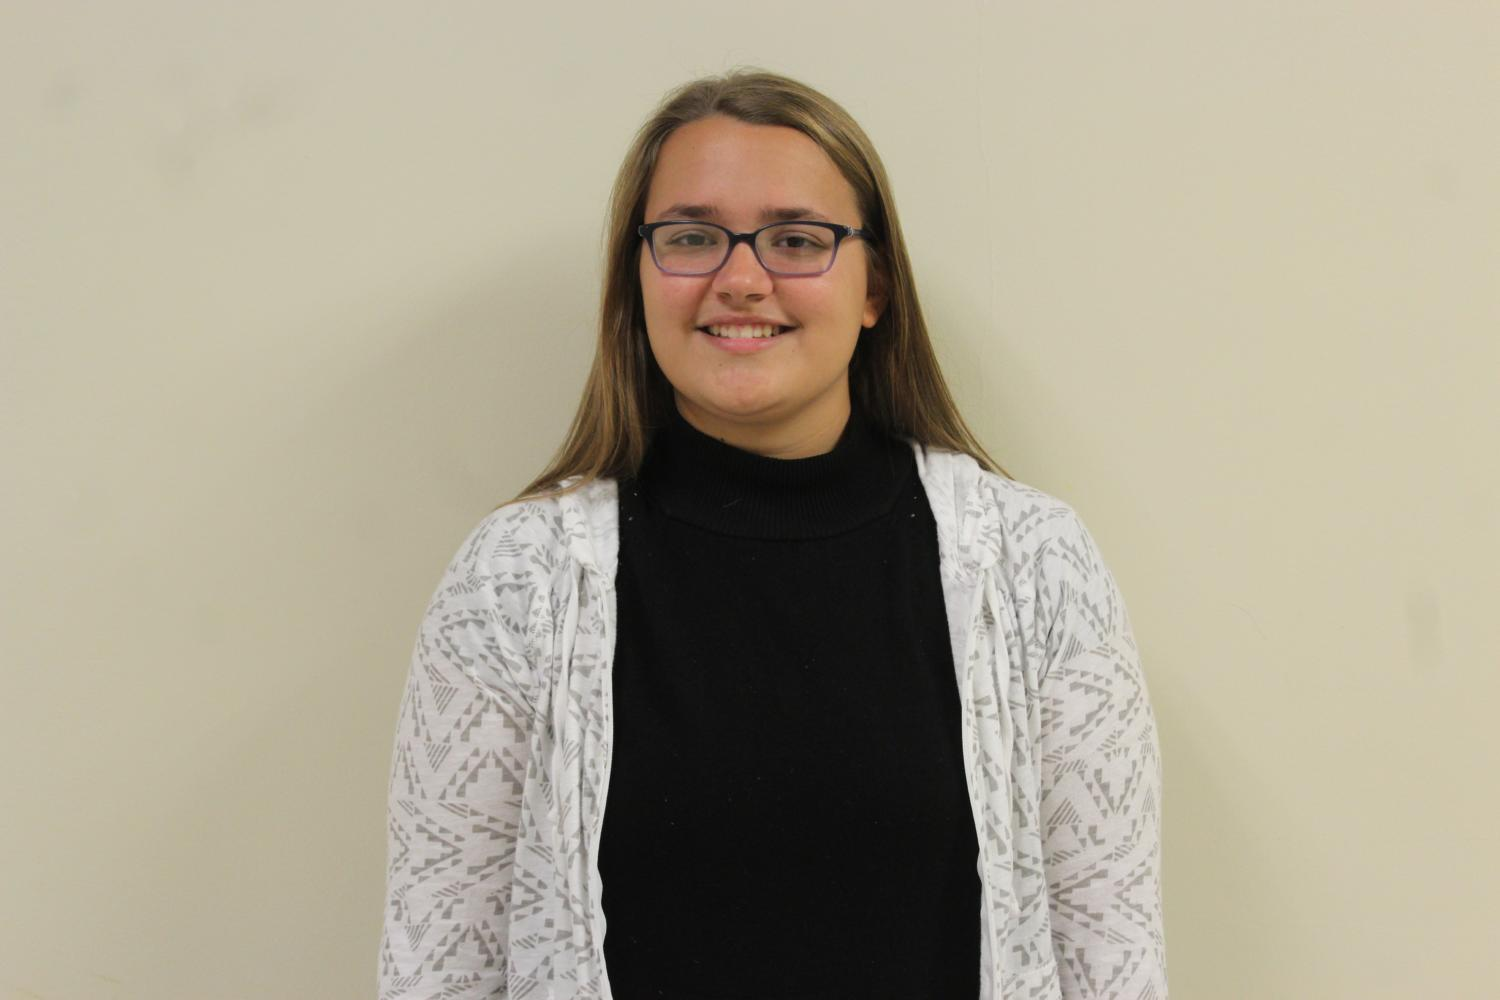 Cynthia Baldwin is sophomore who is involved in many different activities and clubs.